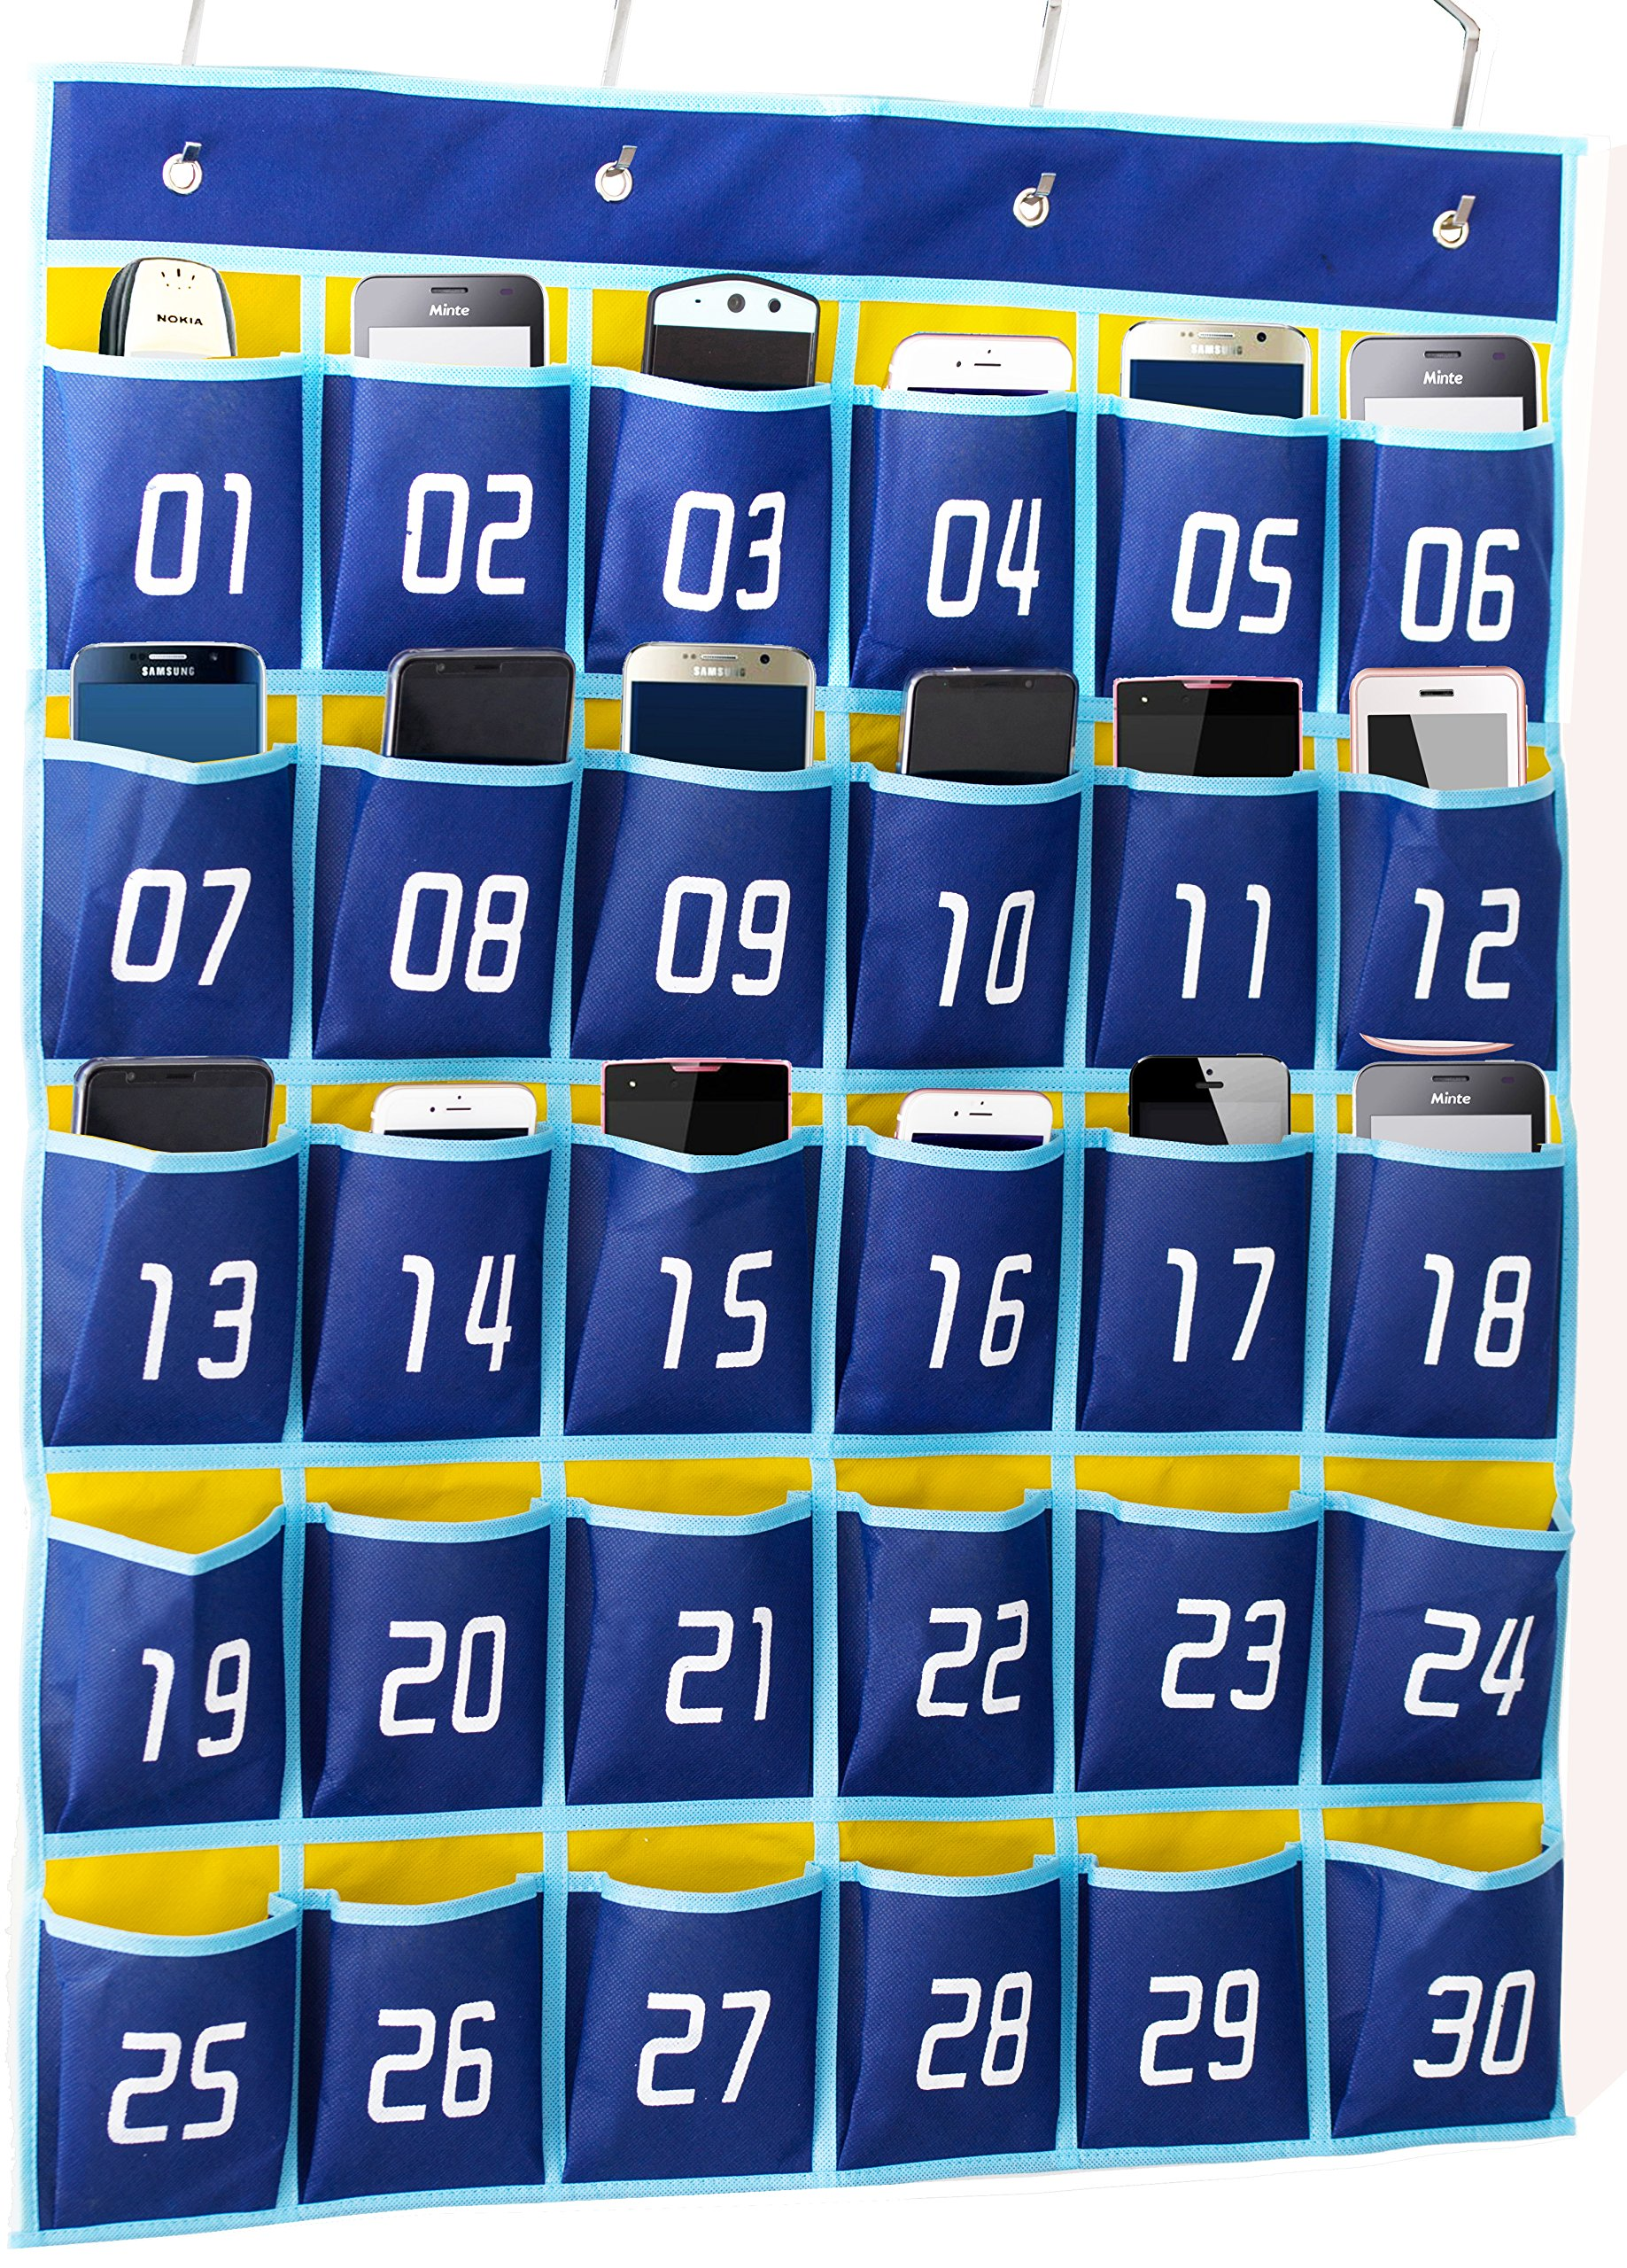 Kimbora Numbered Pocket Chart Classroom Organizer for Cell Phones Calculator Holders (30 Pockets, Blue Pockets)